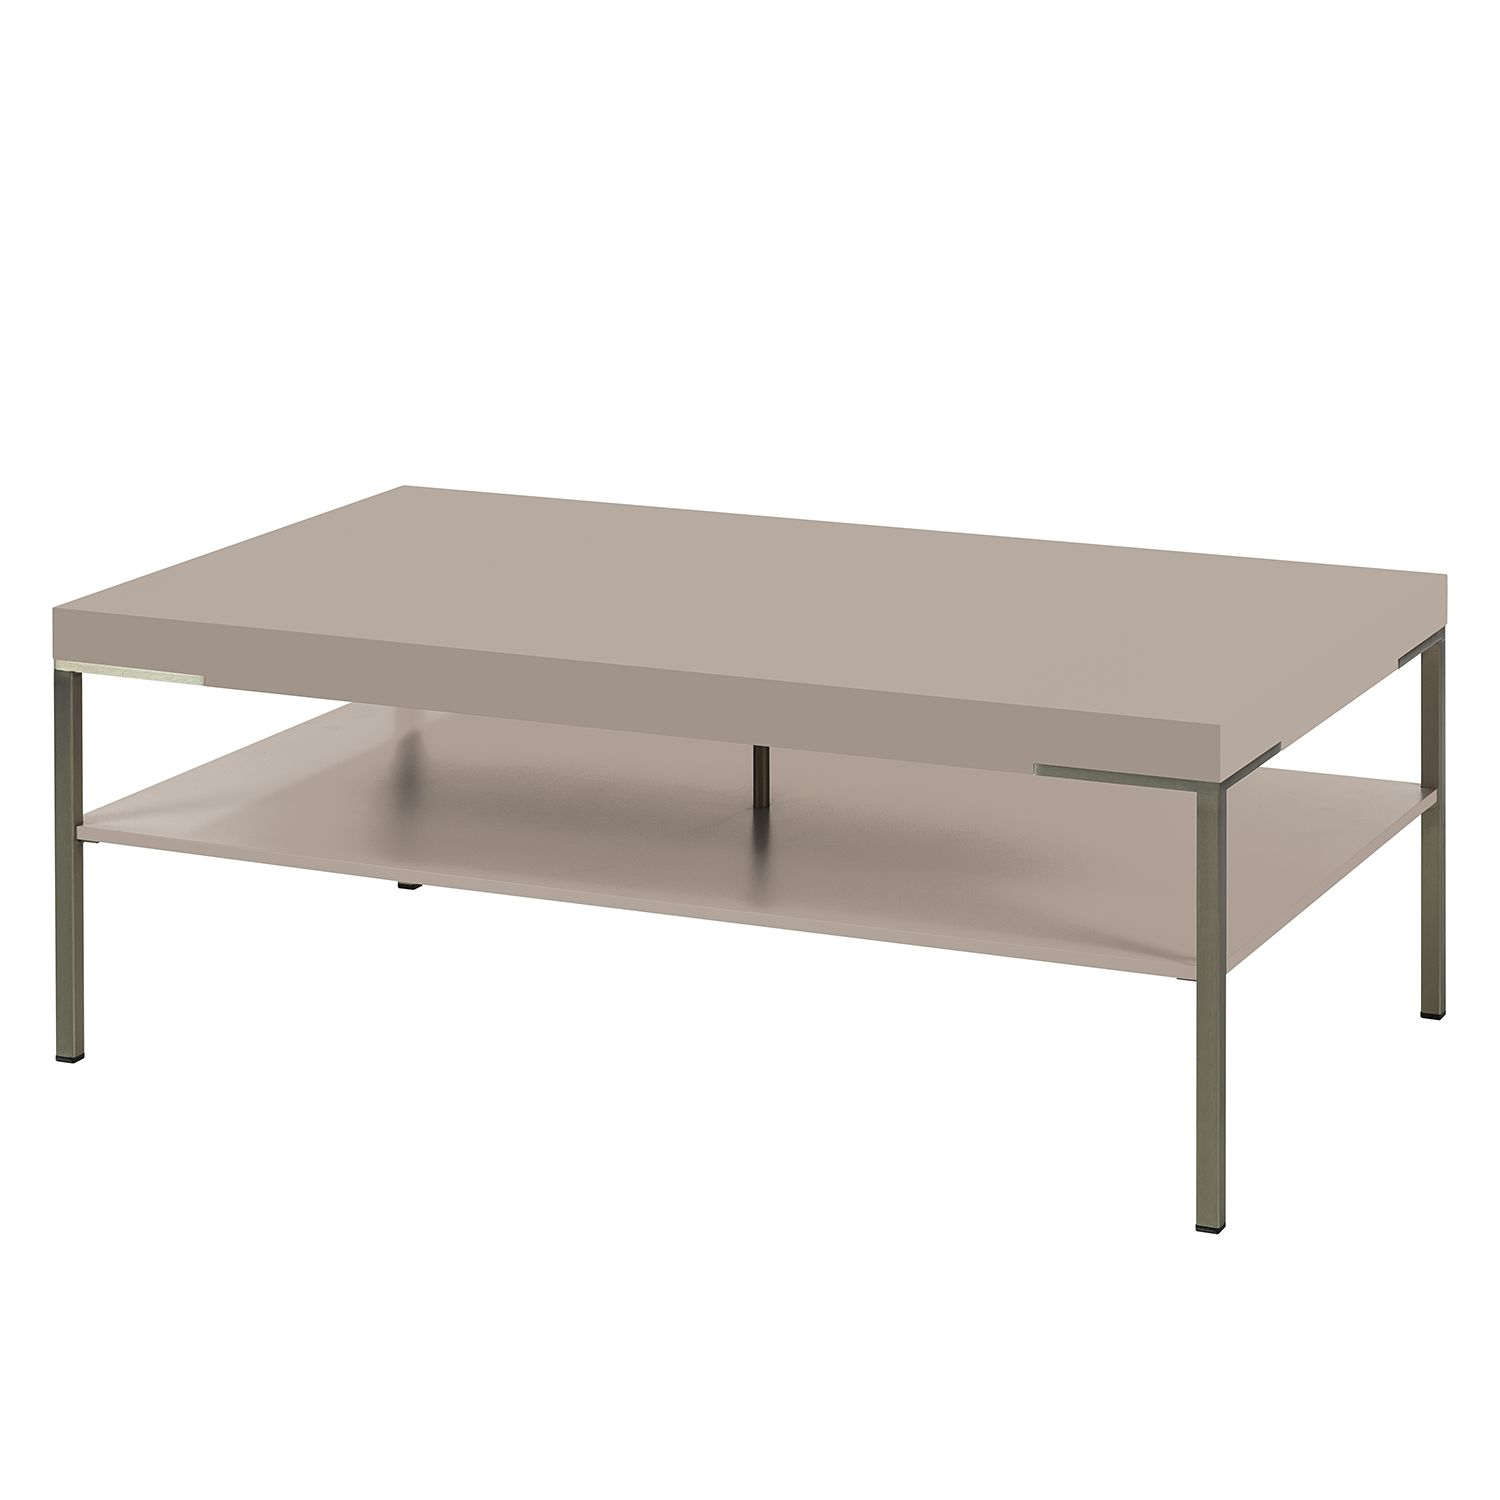 Table basse Anzio - Mat fango - 110 x 65 cm, Netfurn by GWINNER